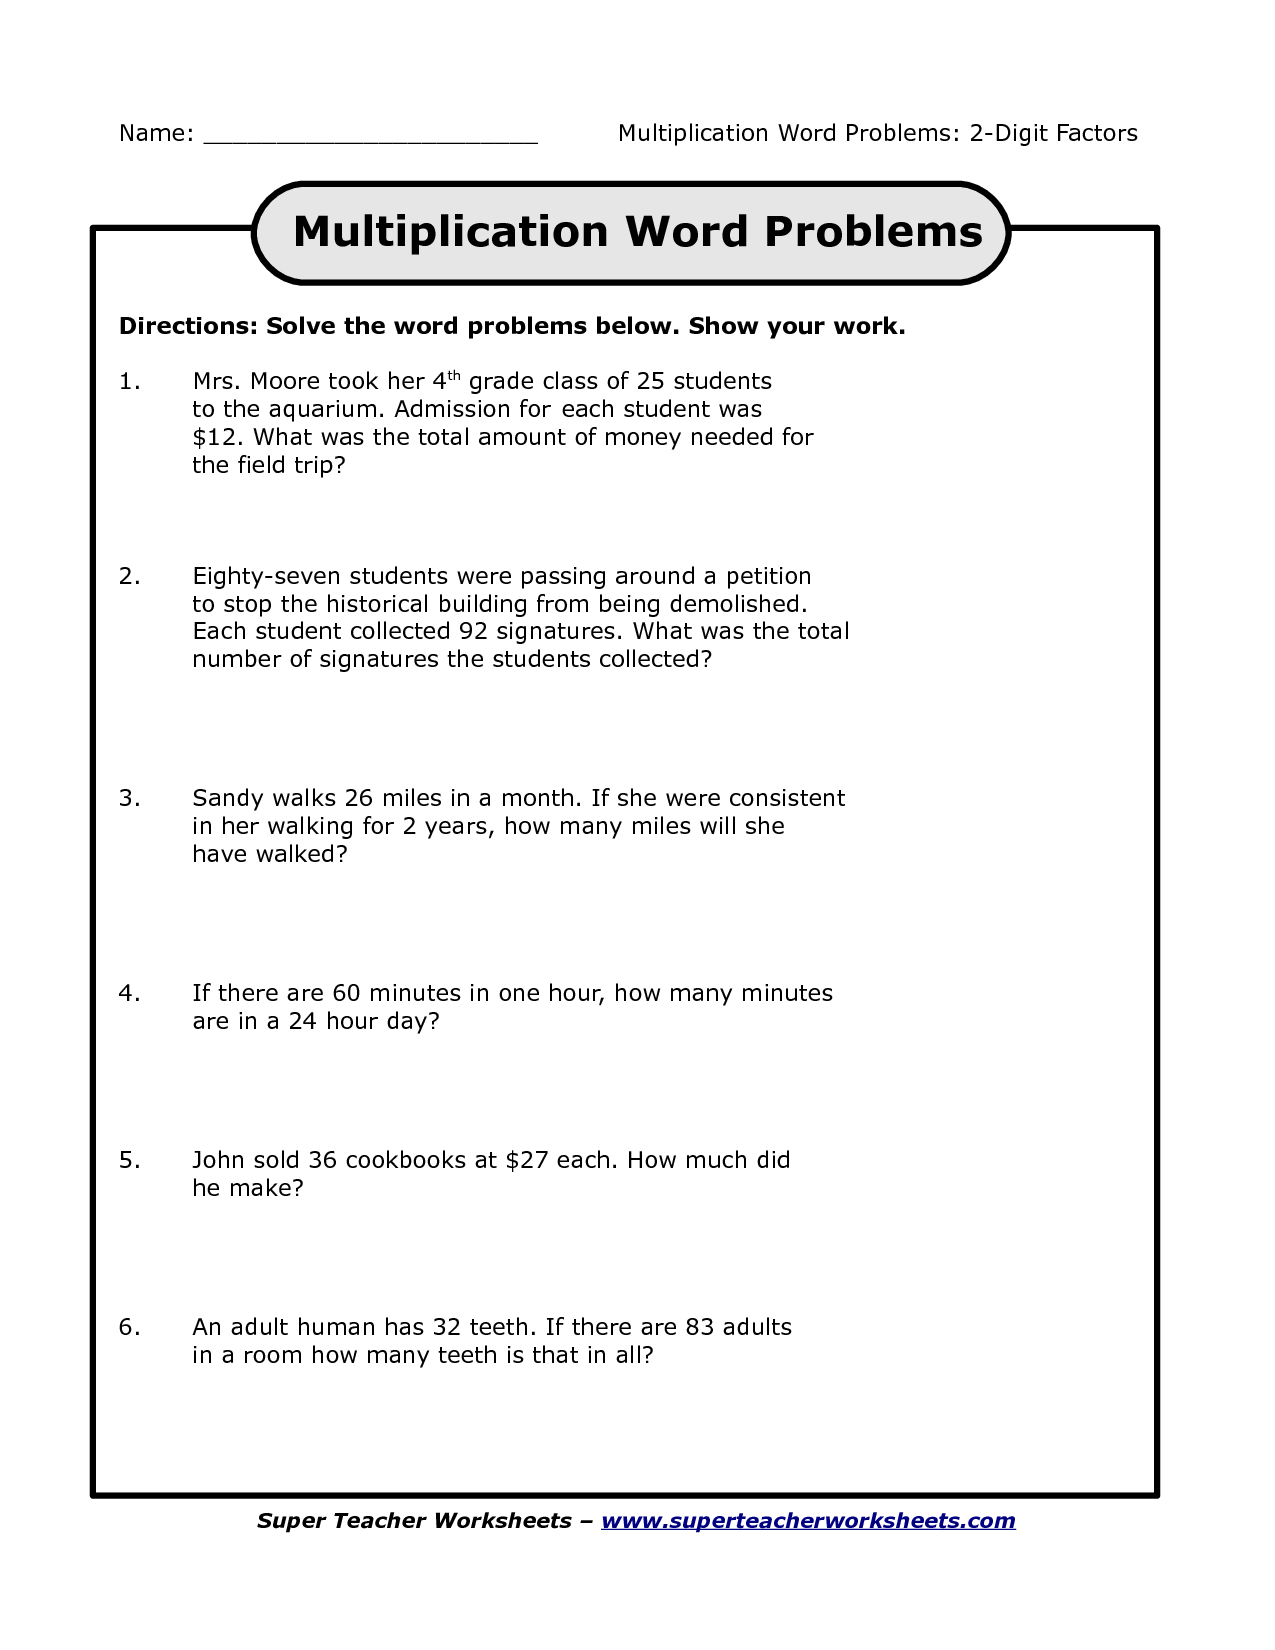 5th Grade Math Multiplication Word Problems Worksheets